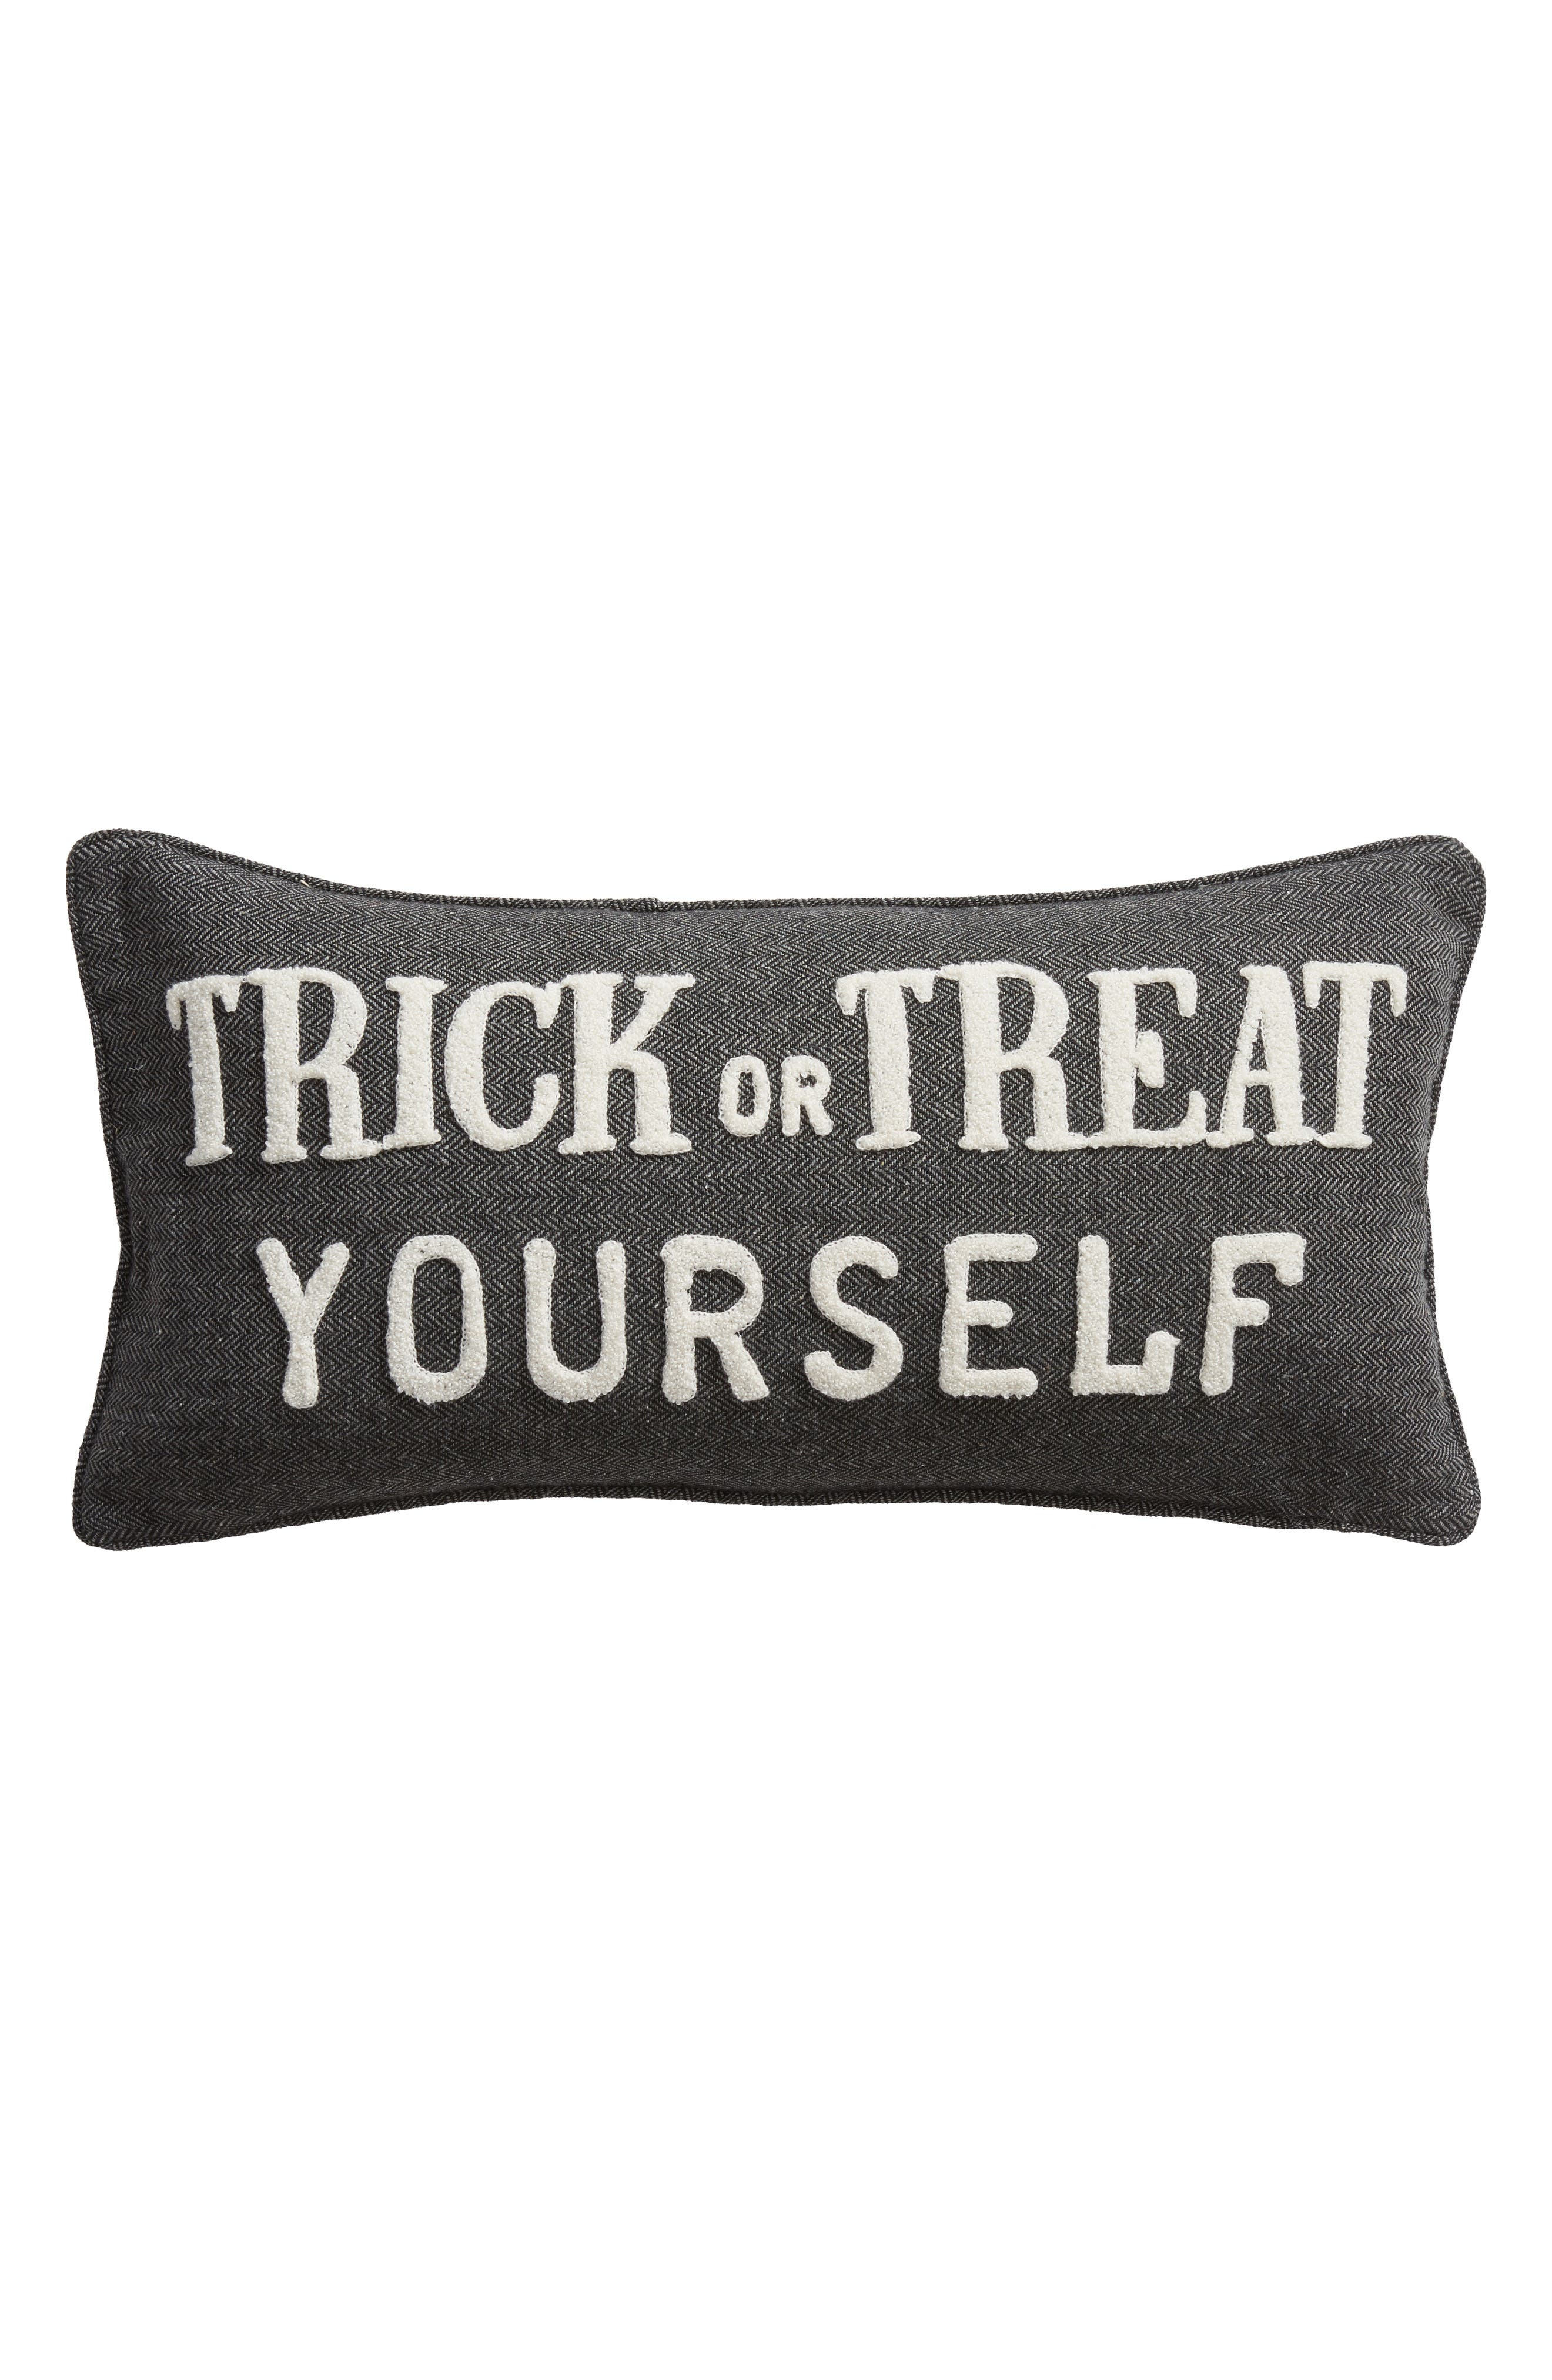 Trick or Treat Yourself Accent Pillow,                             Main thumbnail 1, color,                             CHARCOAL